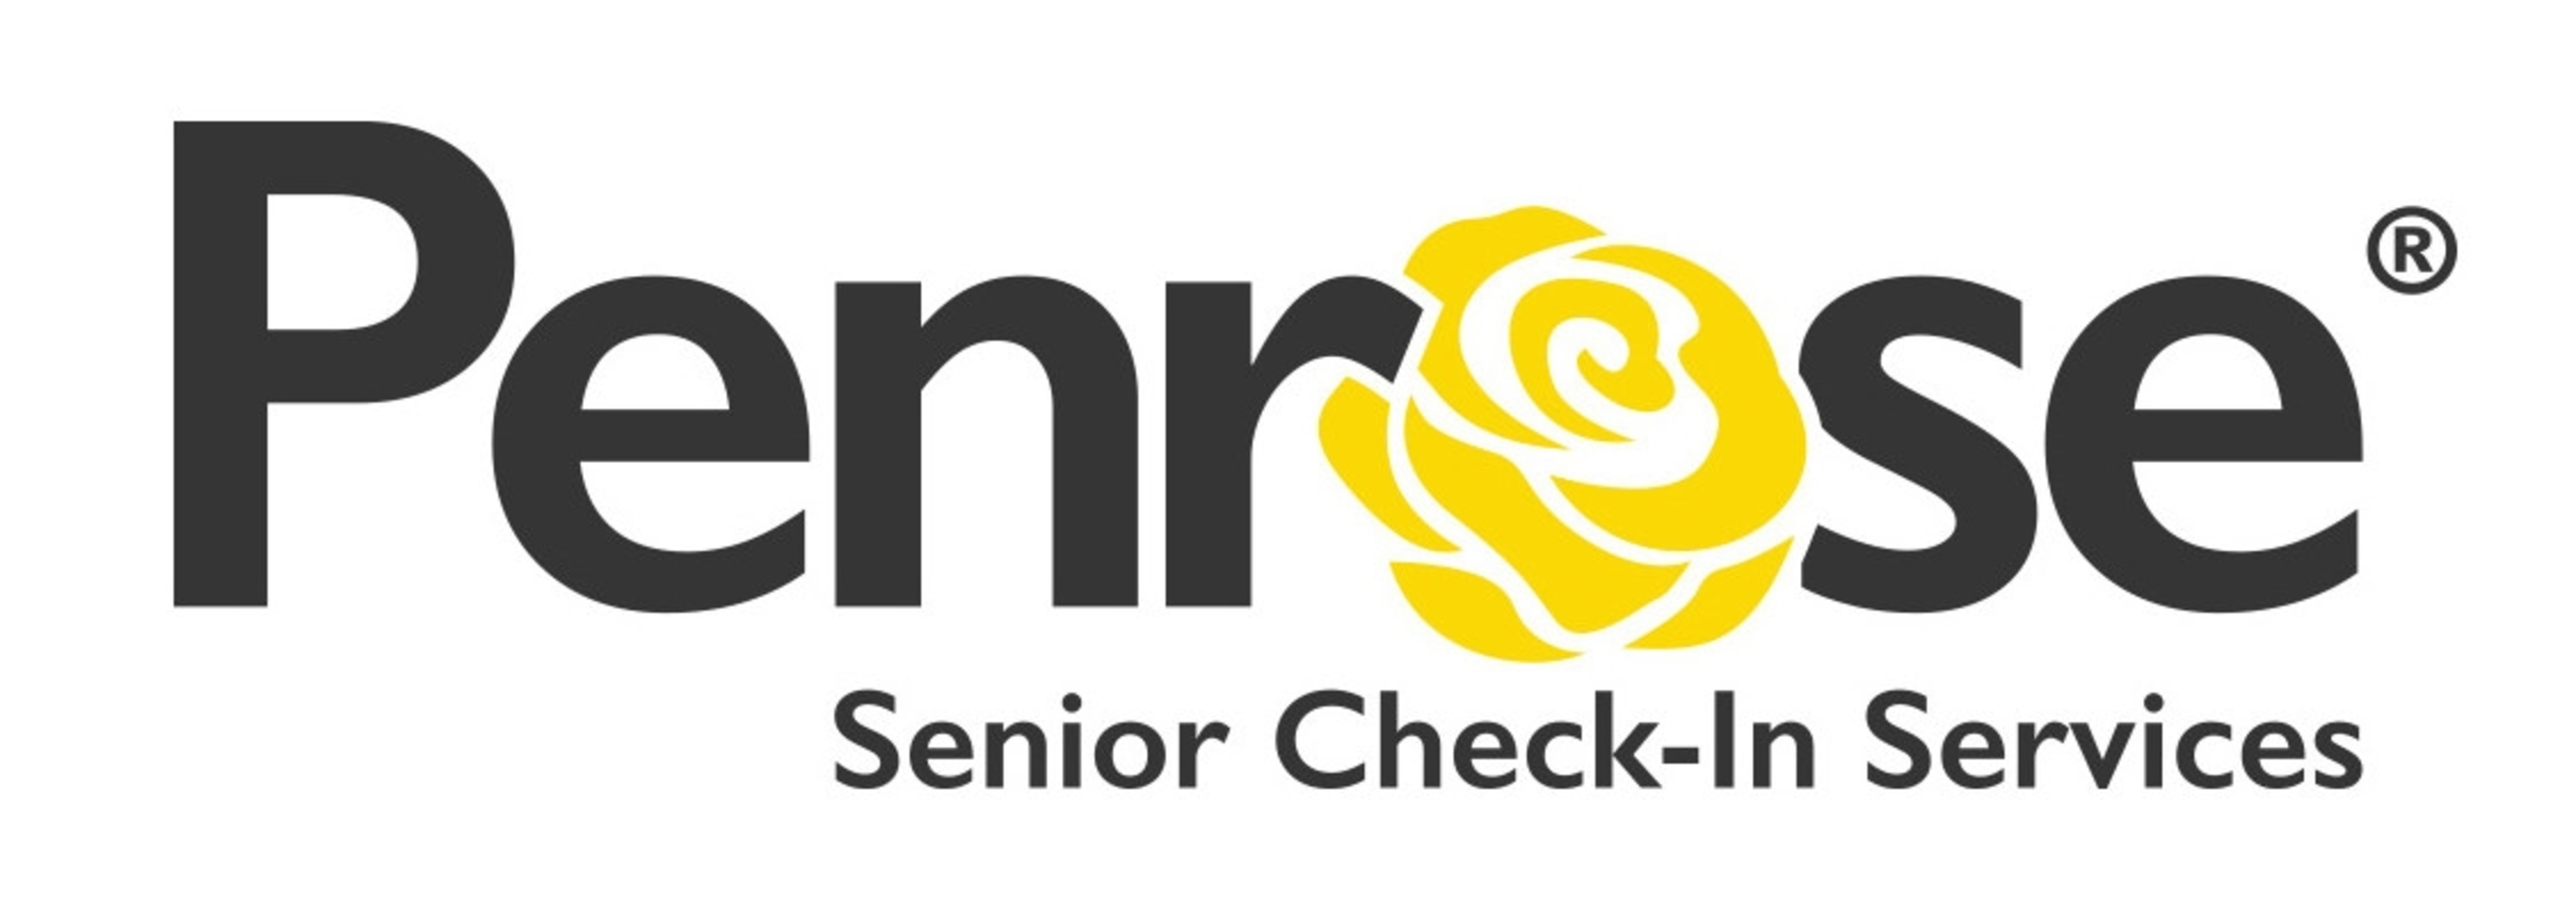 Penrose Checks-In on Seniors and Reports to Families. AARP Winner. AGS Winner. BBB Accredited.